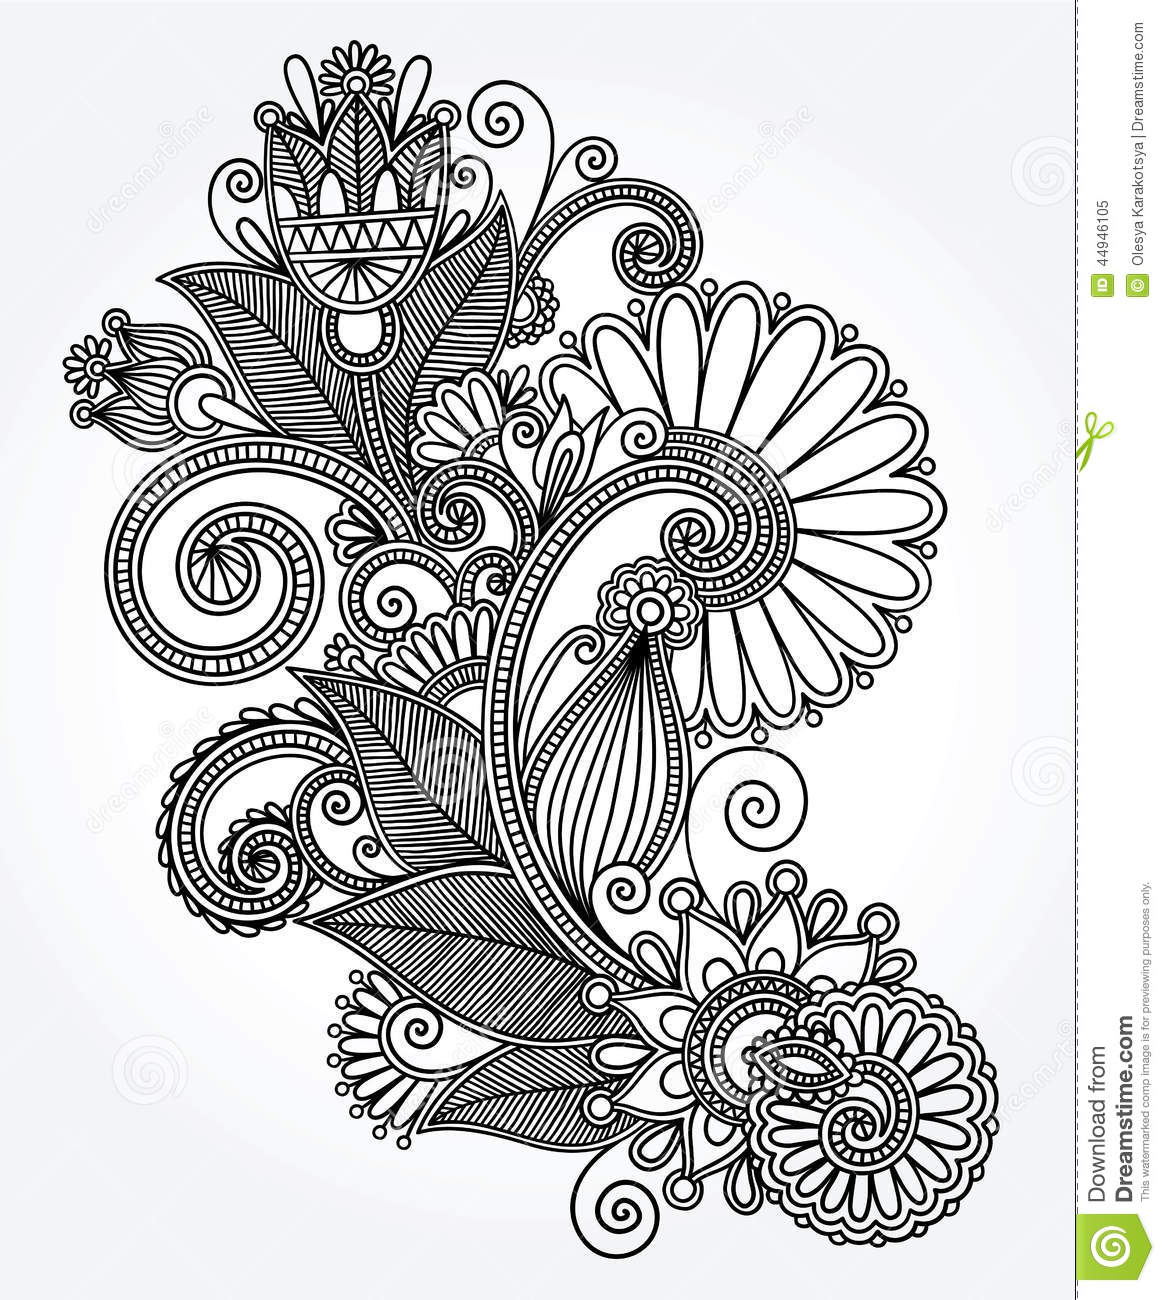 Line Art Design Flower : Original hand draw line art ornate flower design stock